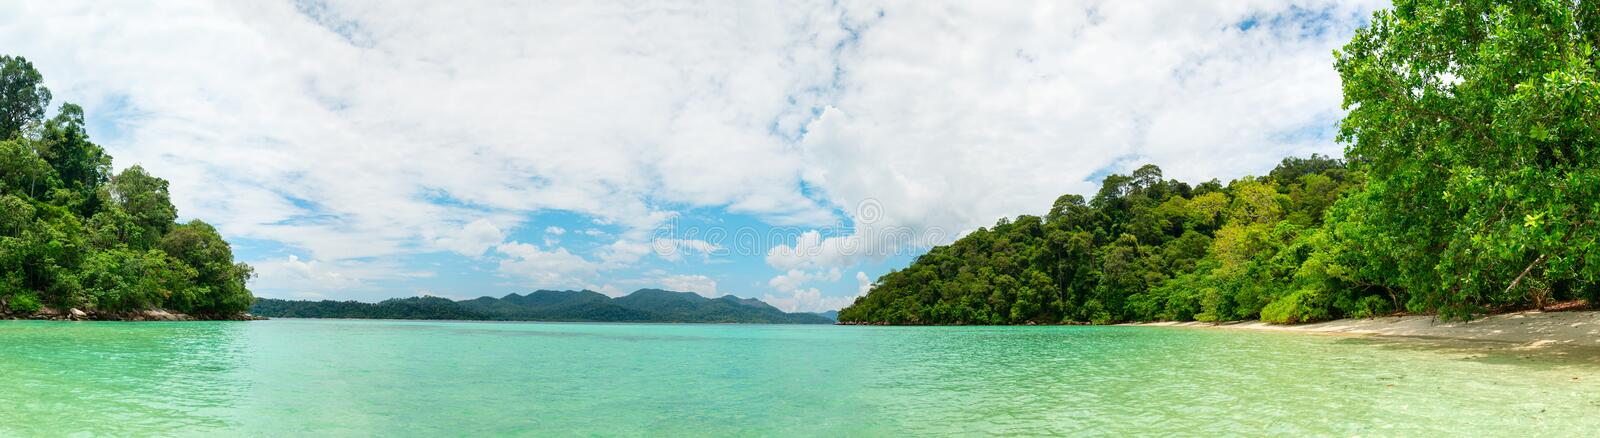 Idyllic tropical clear sea and green island panorama. With calm turquoise water and cloudy sky royalty free stock photography